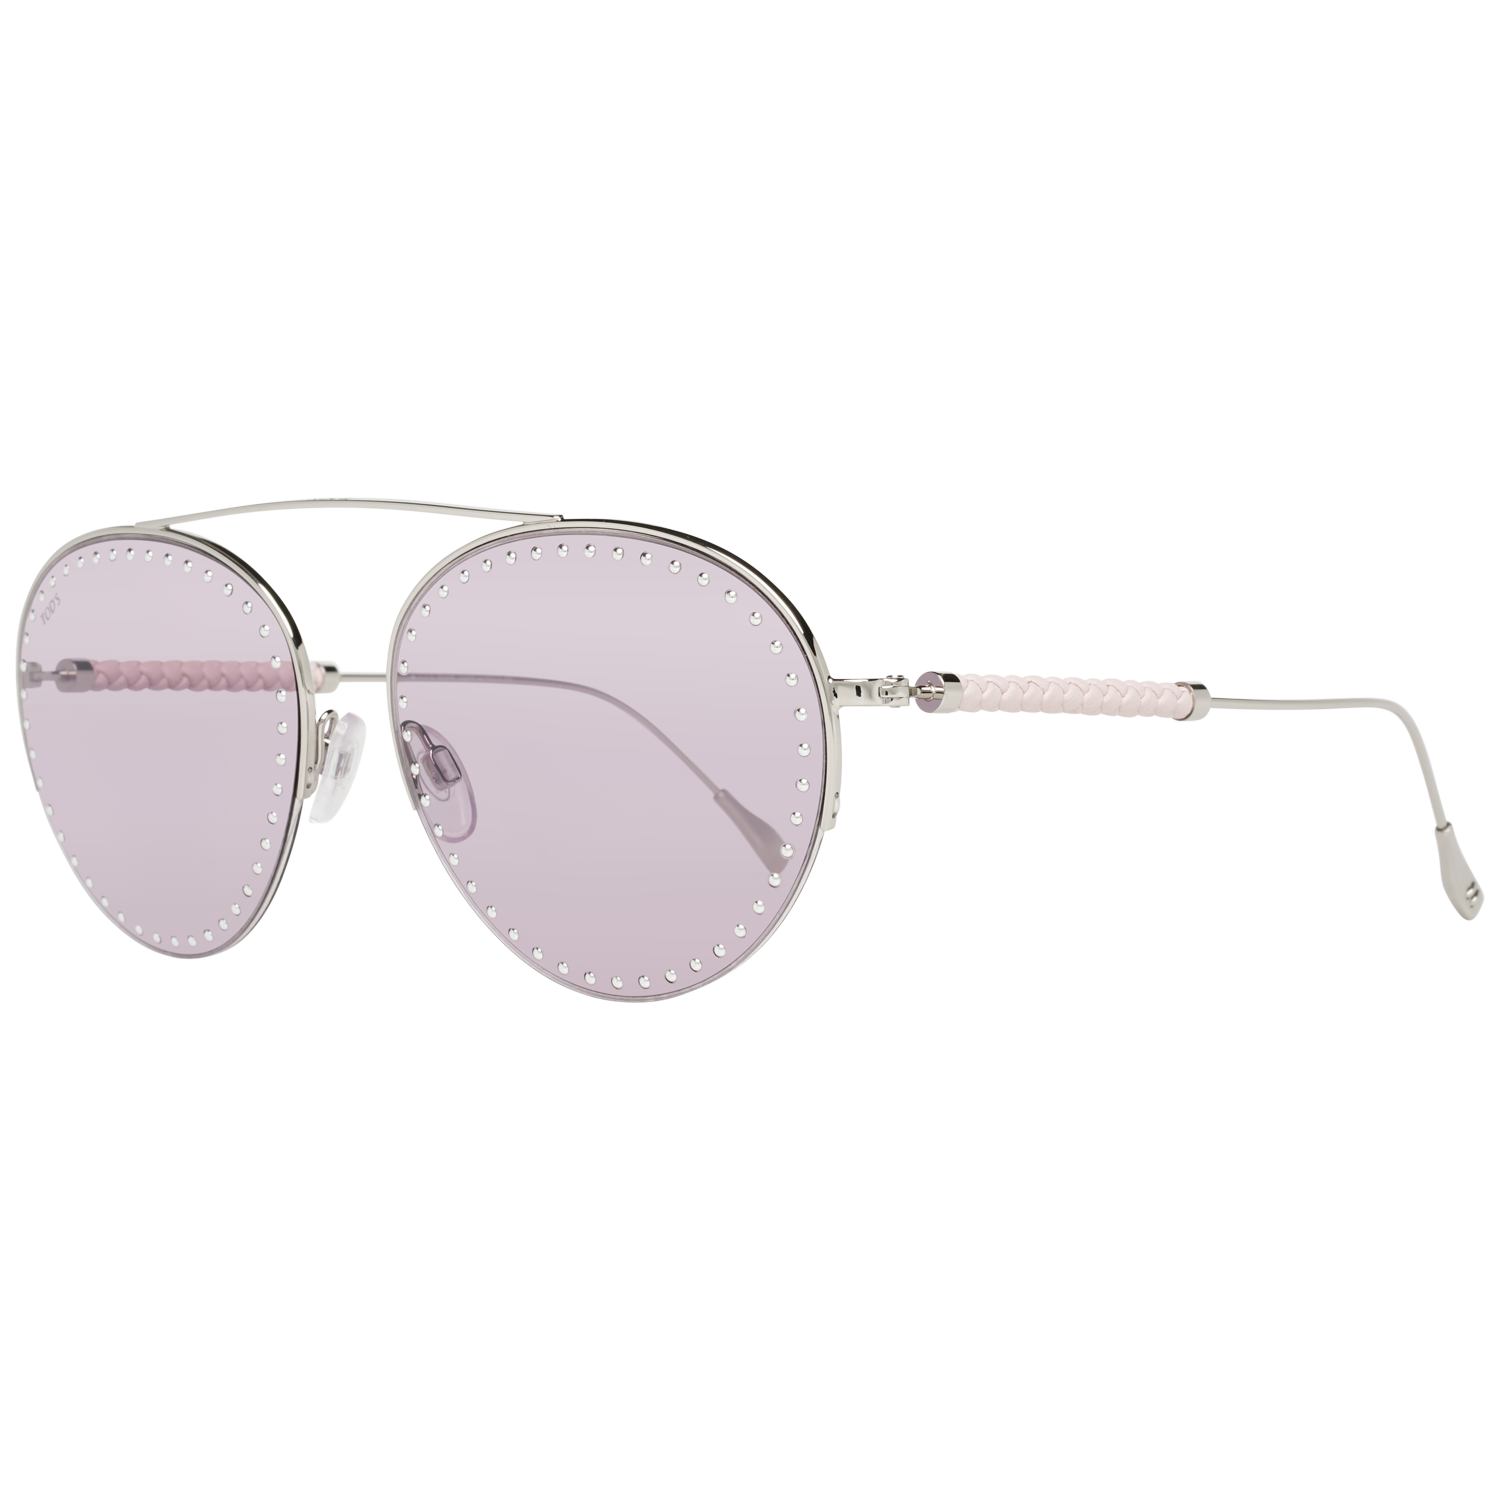 Tods Sunglasses TO0234 16Y 60 Silver